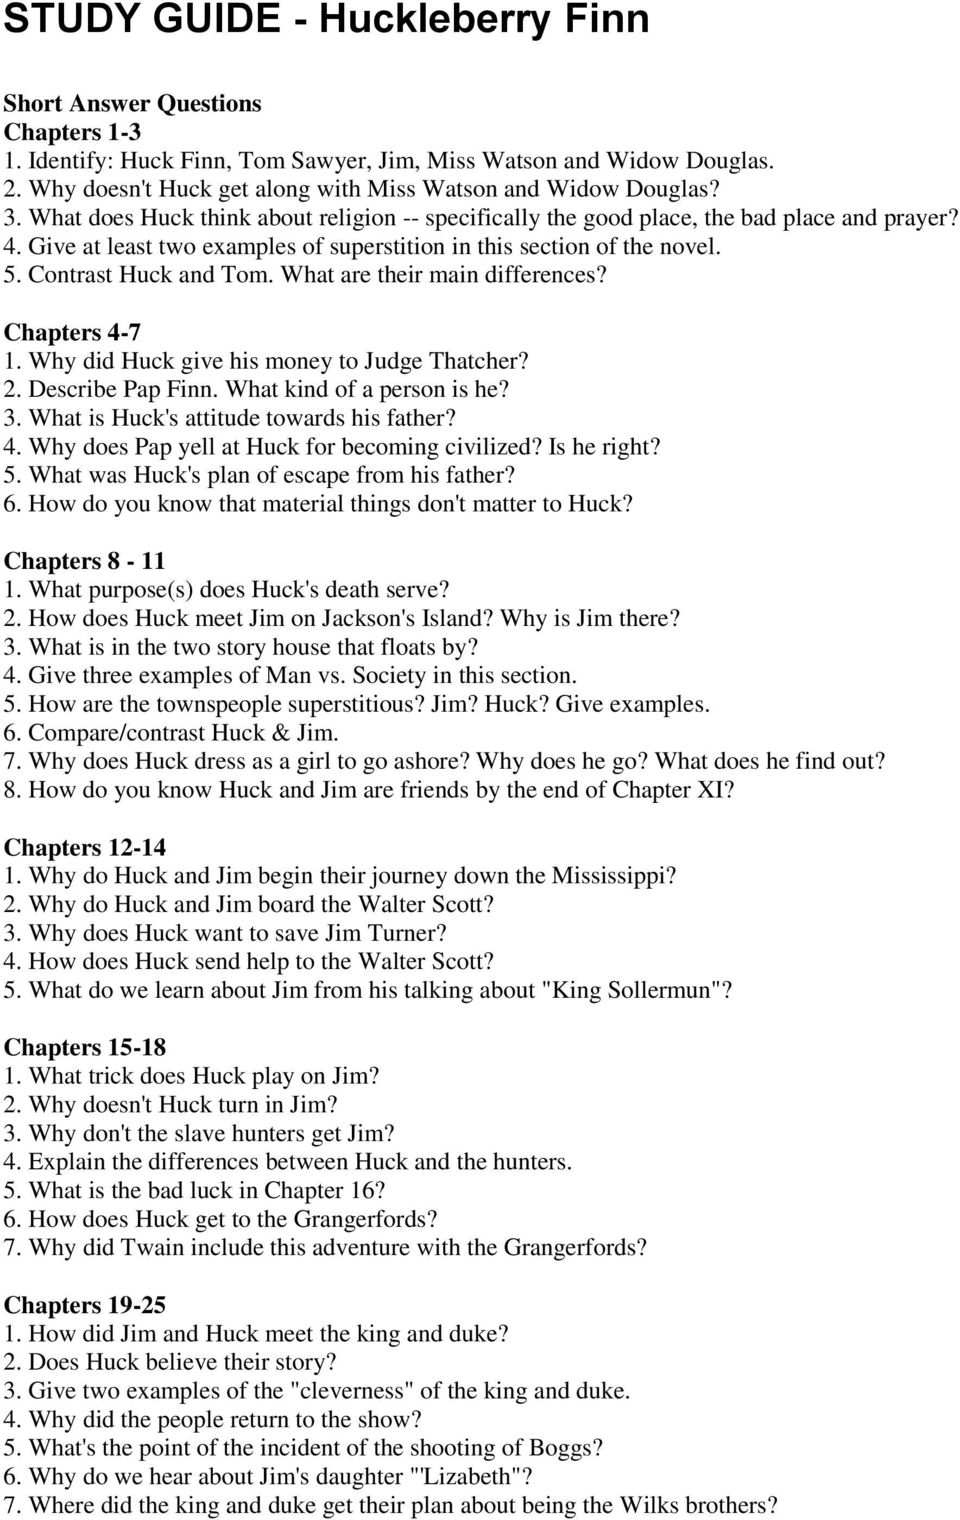 study guide huckleberry finn pdf rh docplayer net Huckleberry Finn Quotes huckleberry finn short answer study guide page 2